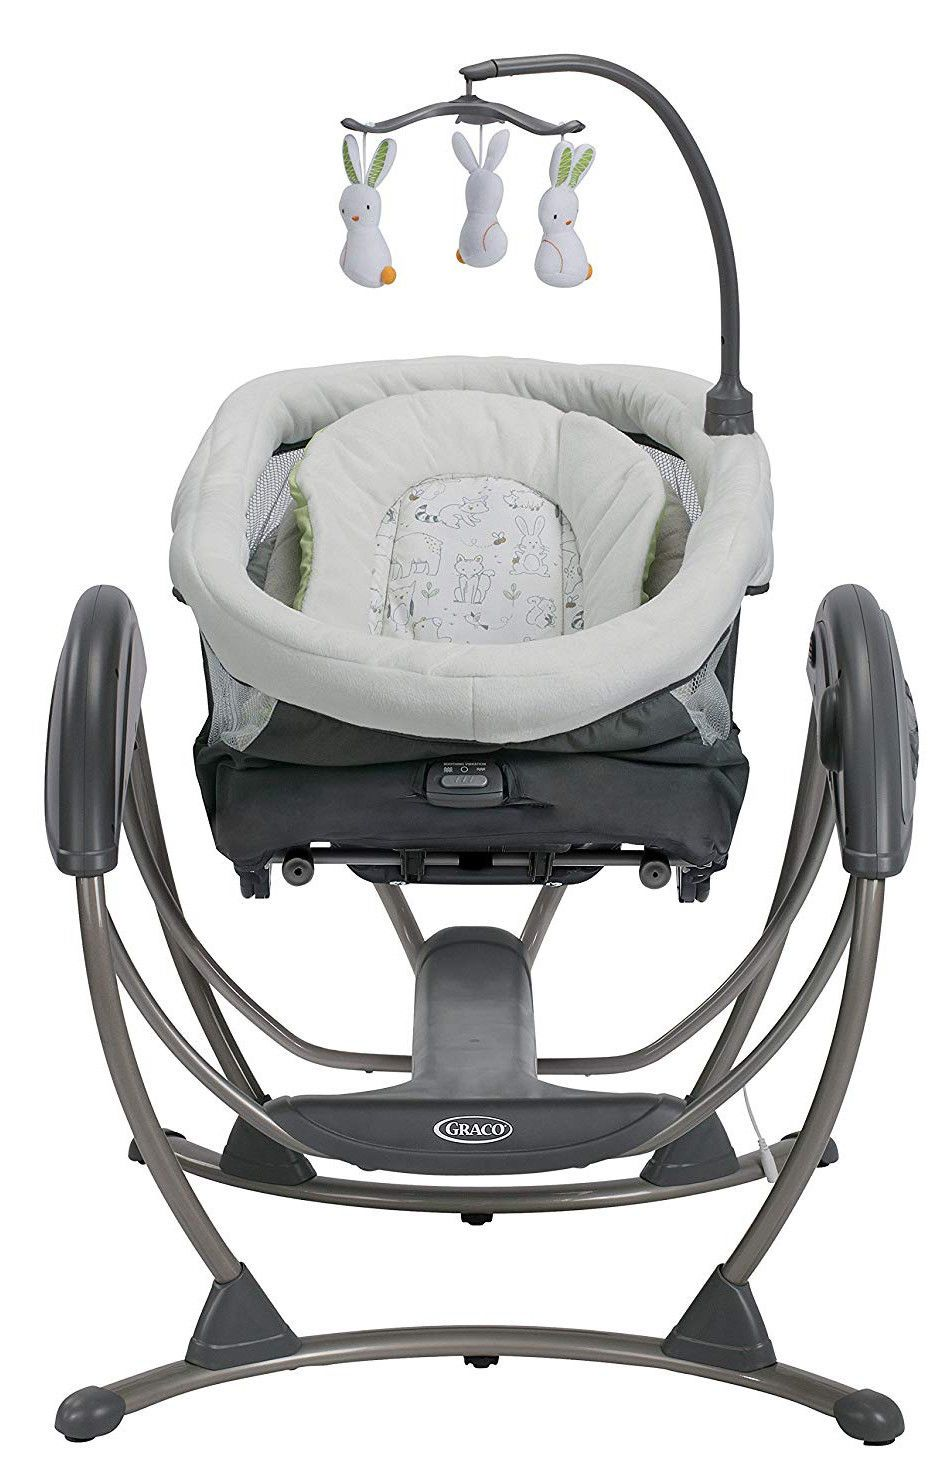 Baby Cradle Graco Details About Graco Baby Dreamglider Gliding Swing Sleeper